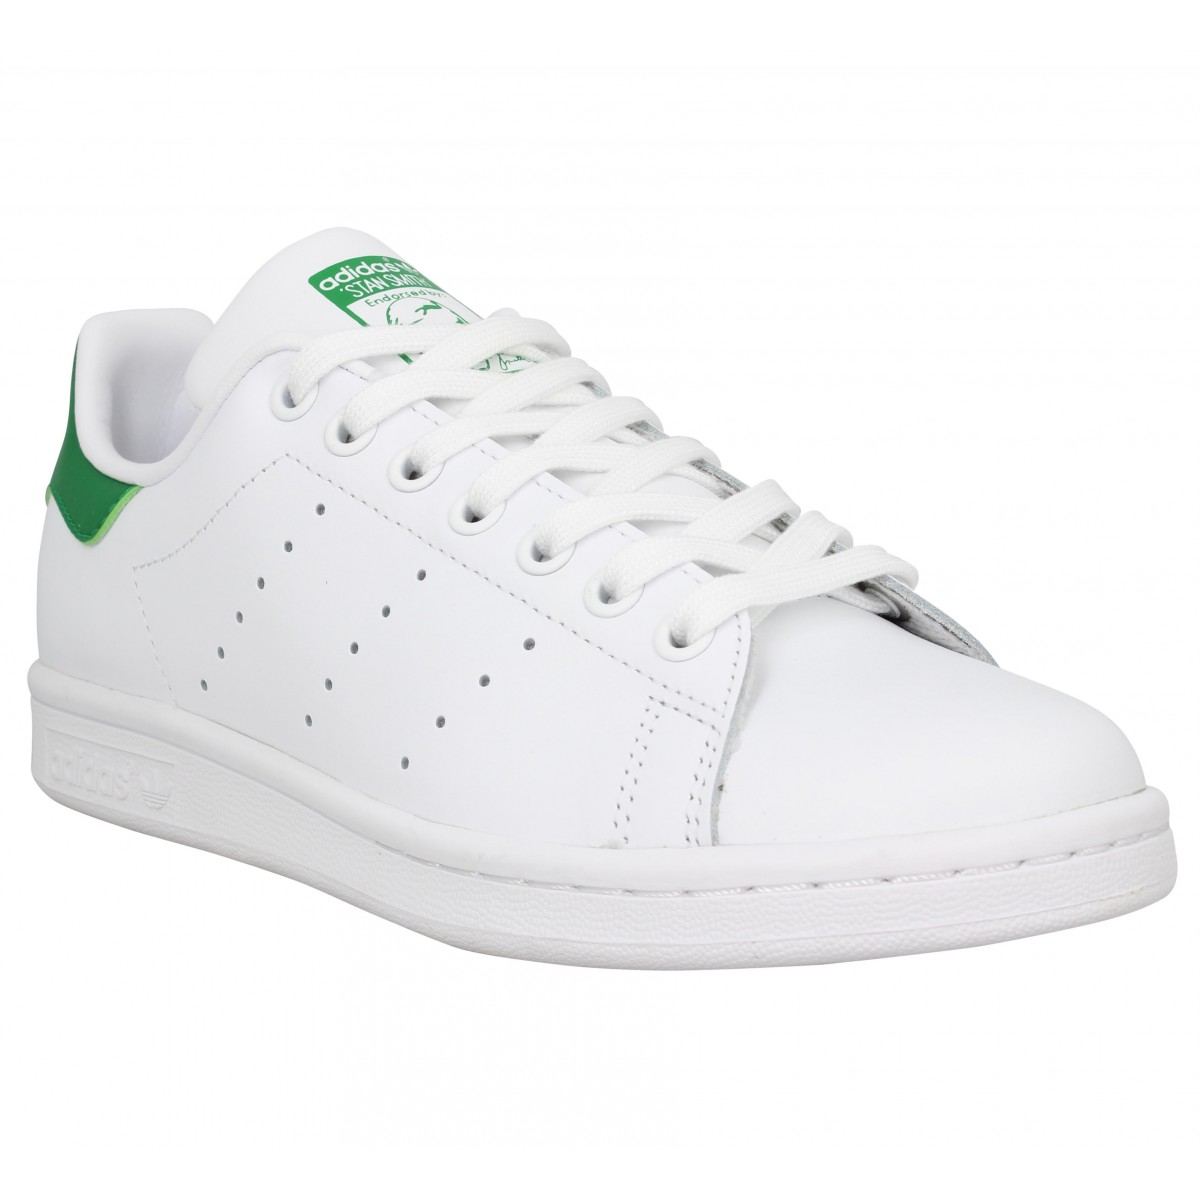 low priced f336a b6e0b Baskets ADIDAS Stan Smith cuir Blanc Vert